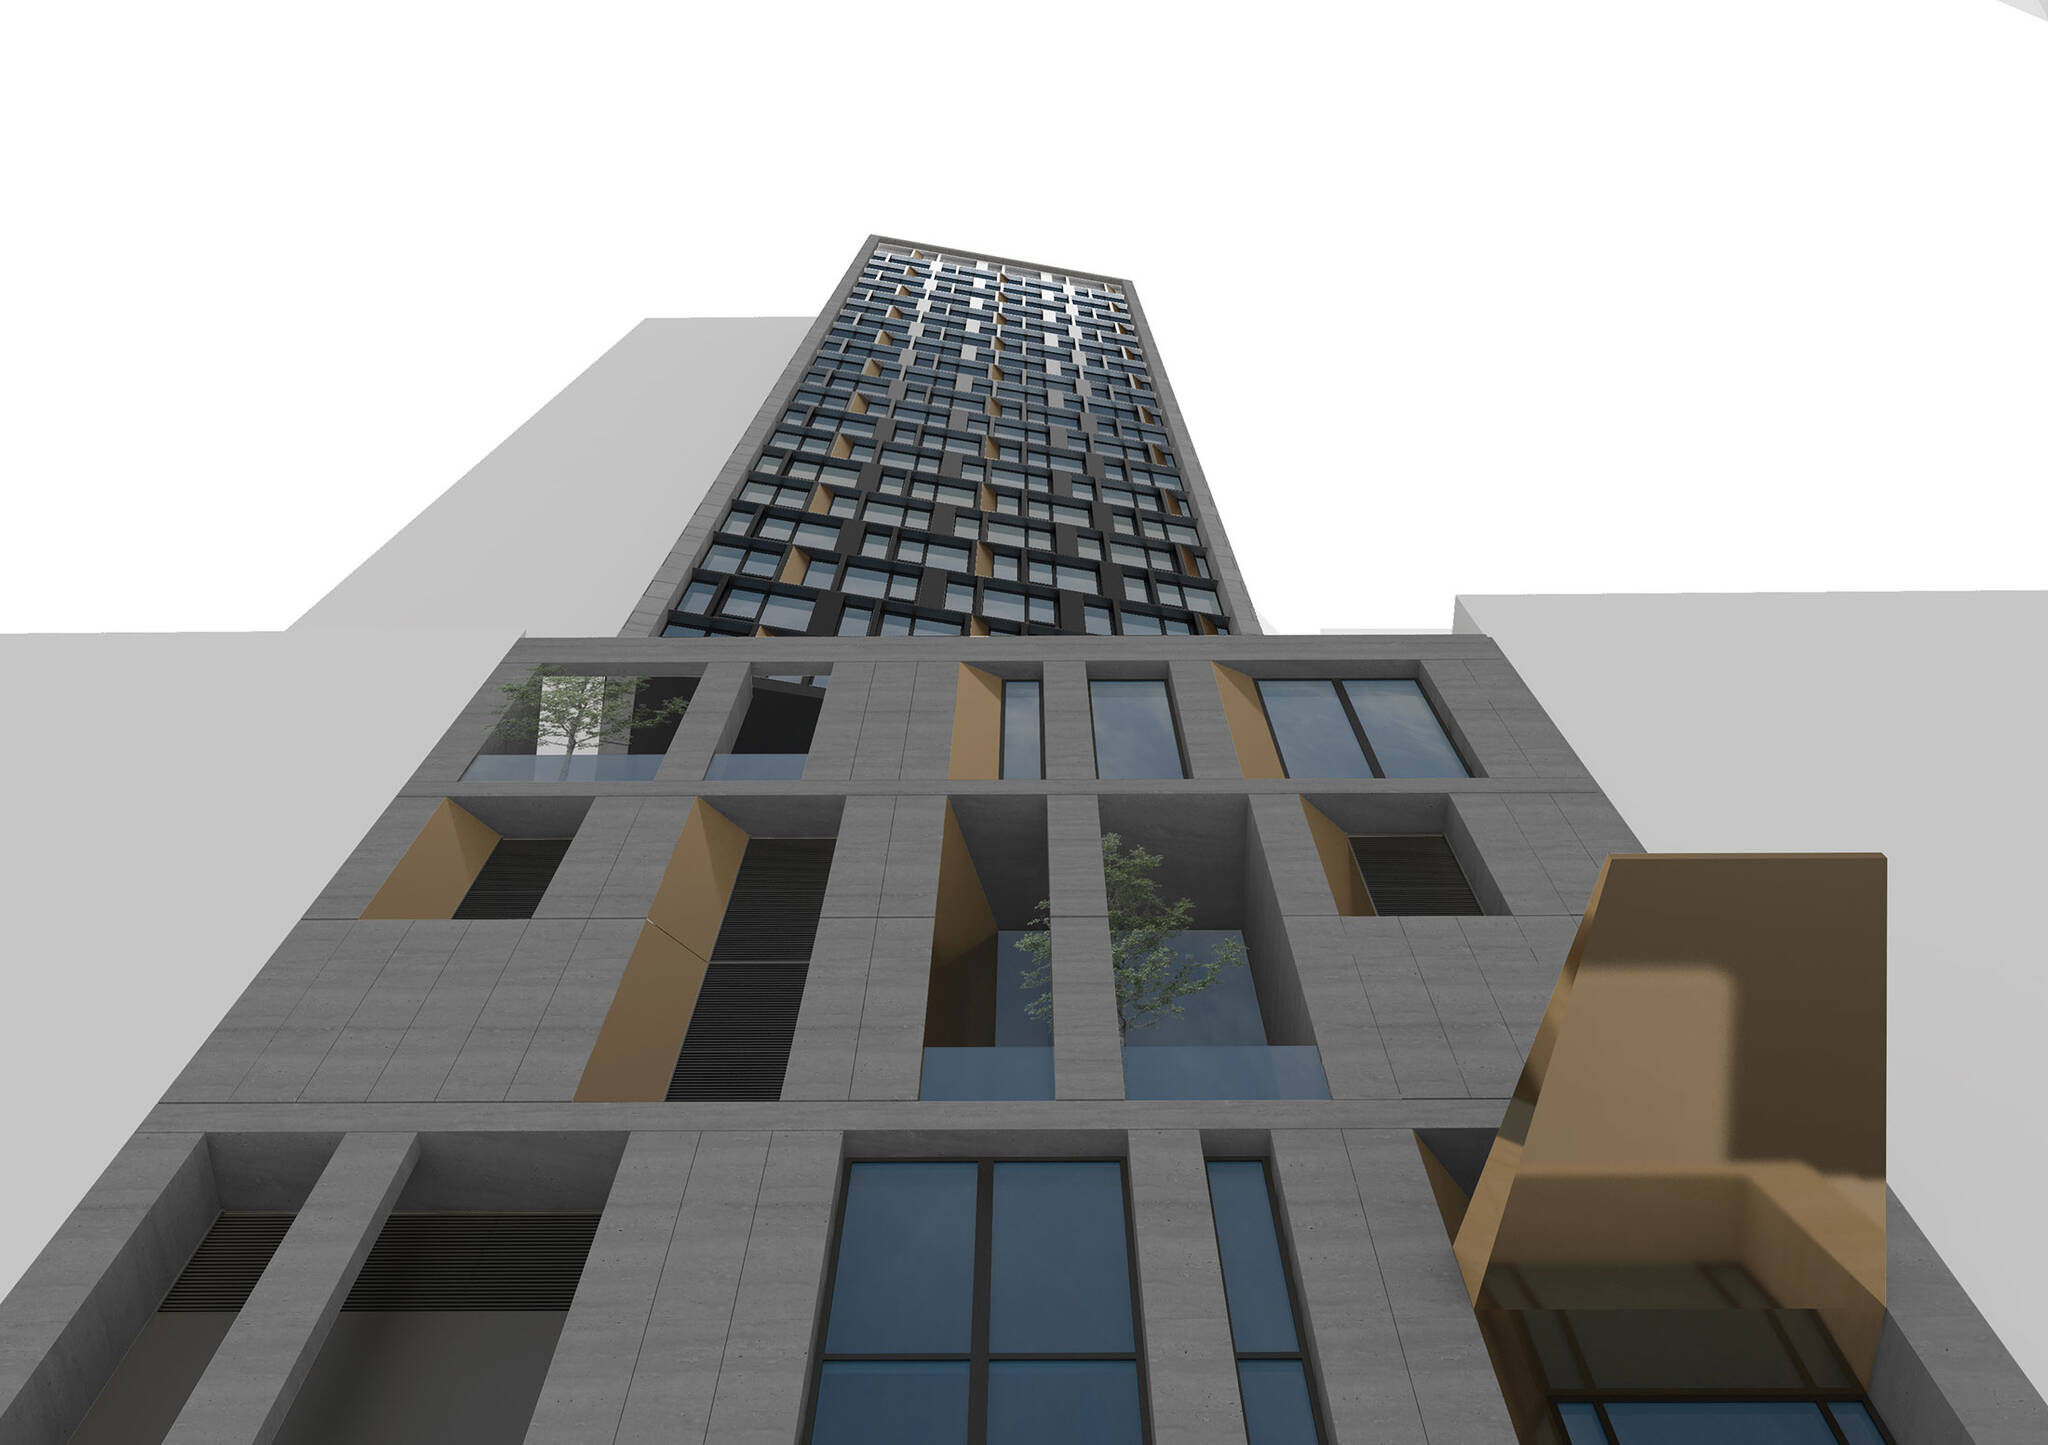 Lookup view of the Modular AC Hotel project located at 842 Sixth Avenue in NoMad, New York City designed by the architecture studio Danny Forster & Architecture